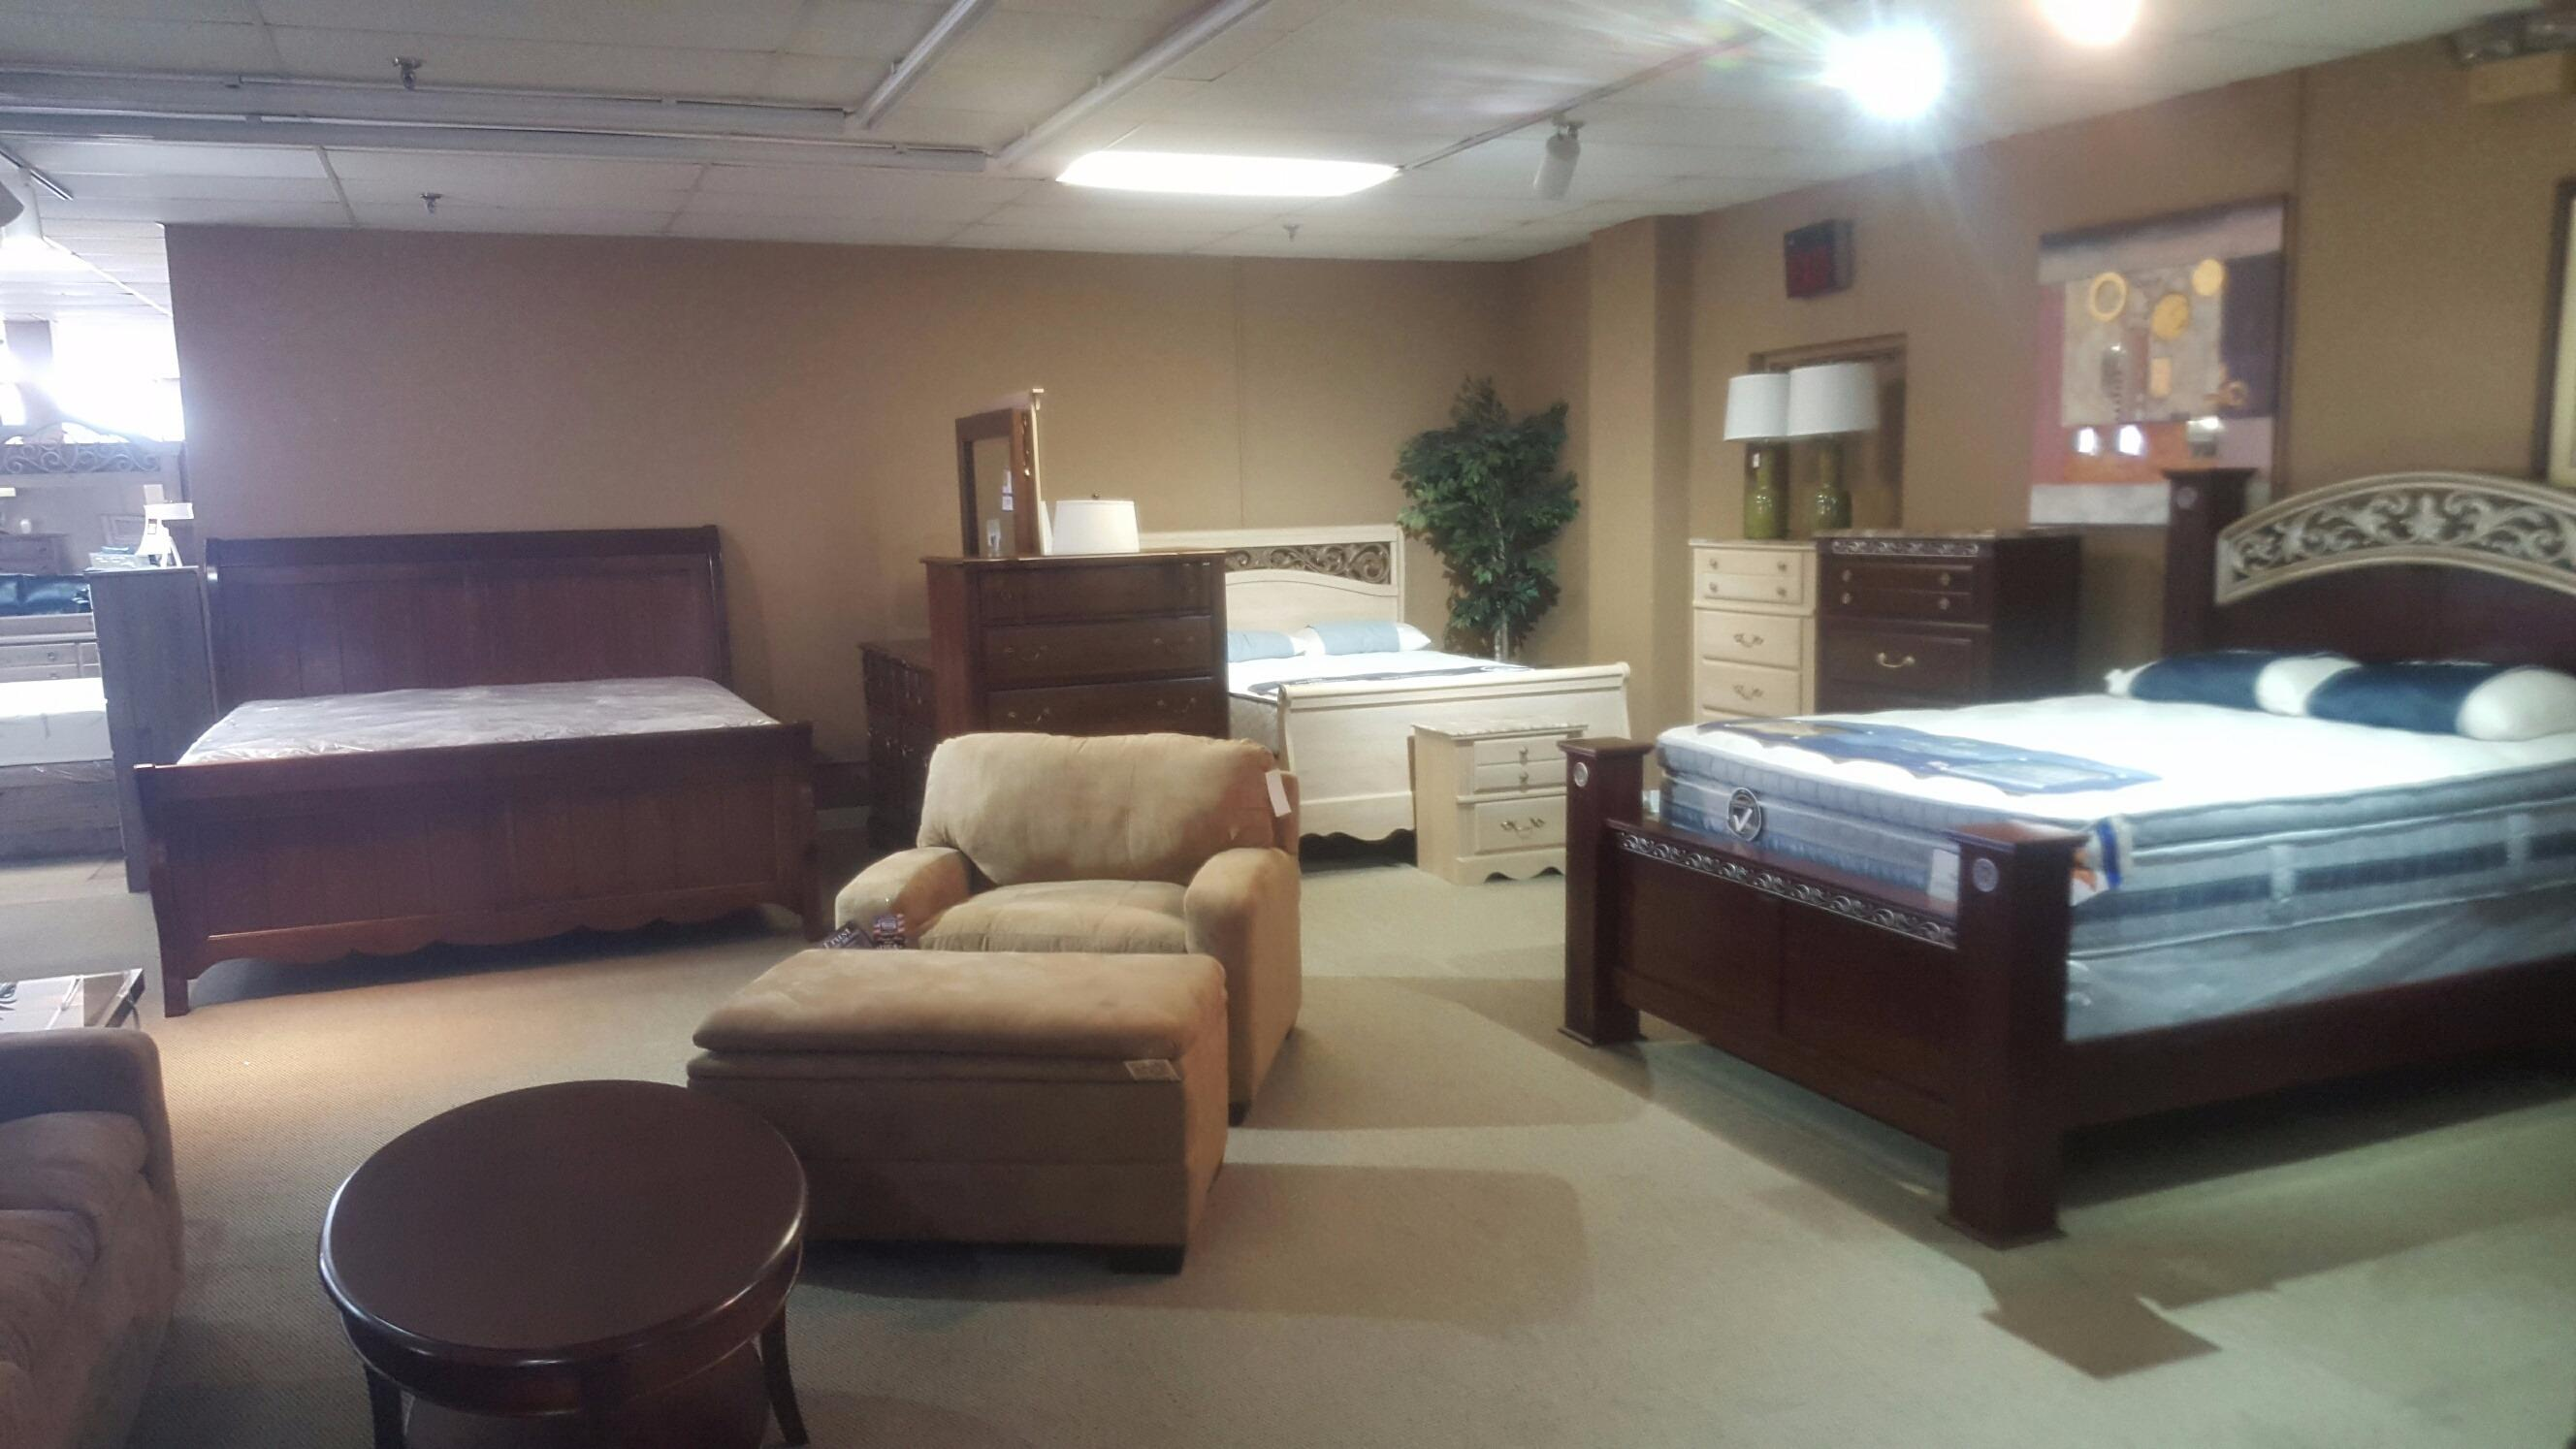 Schloemer Furniture And Sleep Center In Florence Ky Whitepages